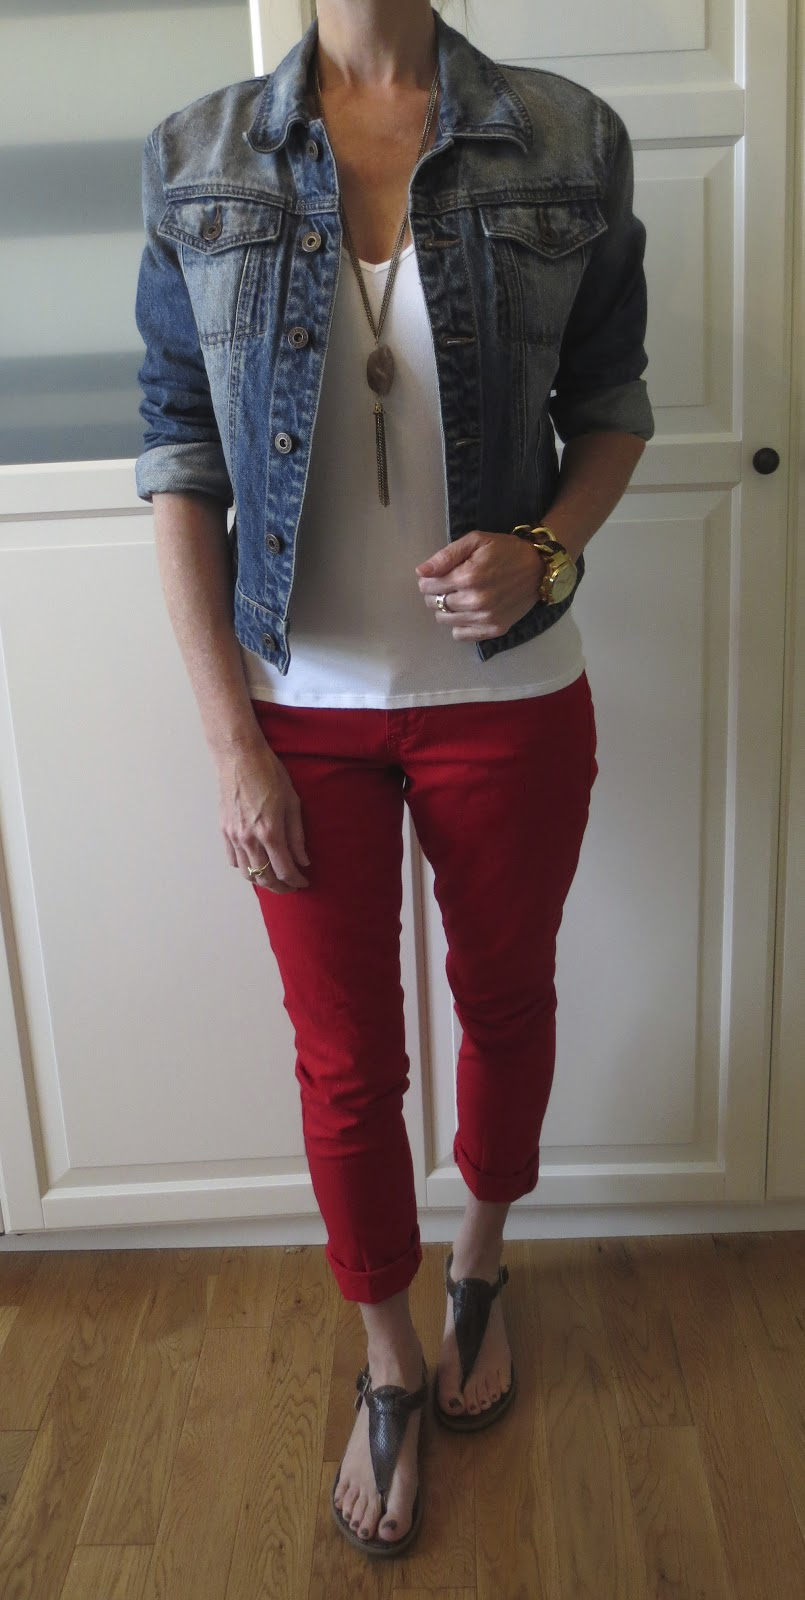 PJMu0026#39;s Closet Ways to Wear Red Jeans